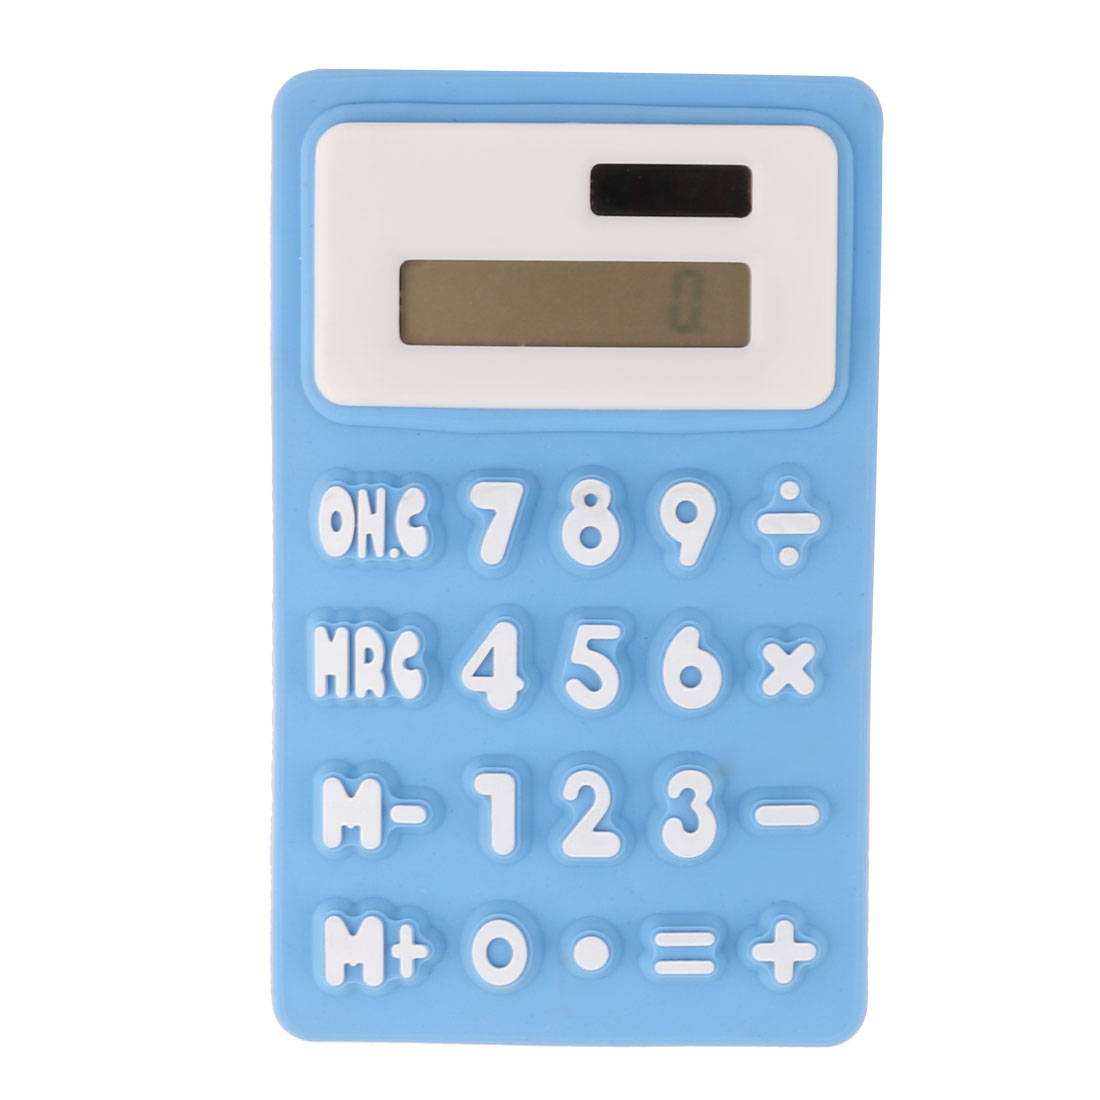 Silicone 8 Digits Display 20 Keys Portable Foldable Calculator Blue White